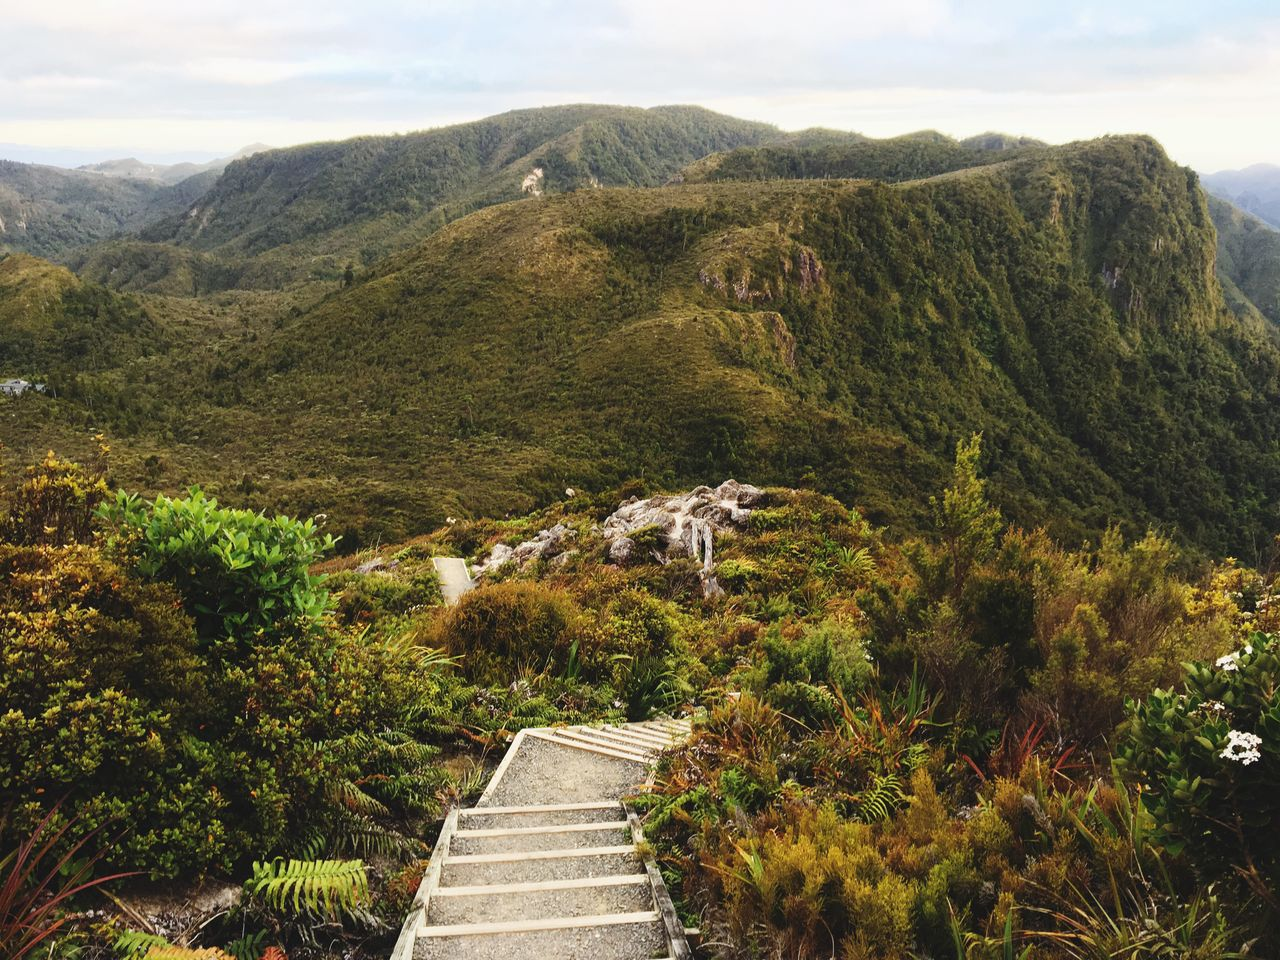 mountain, steps, tranquil scene, scenics, nature, tranquility, high angle view, mountain range, beauty in nature, day, steps and staircases, no people, outdoors, tree, landscape, sky